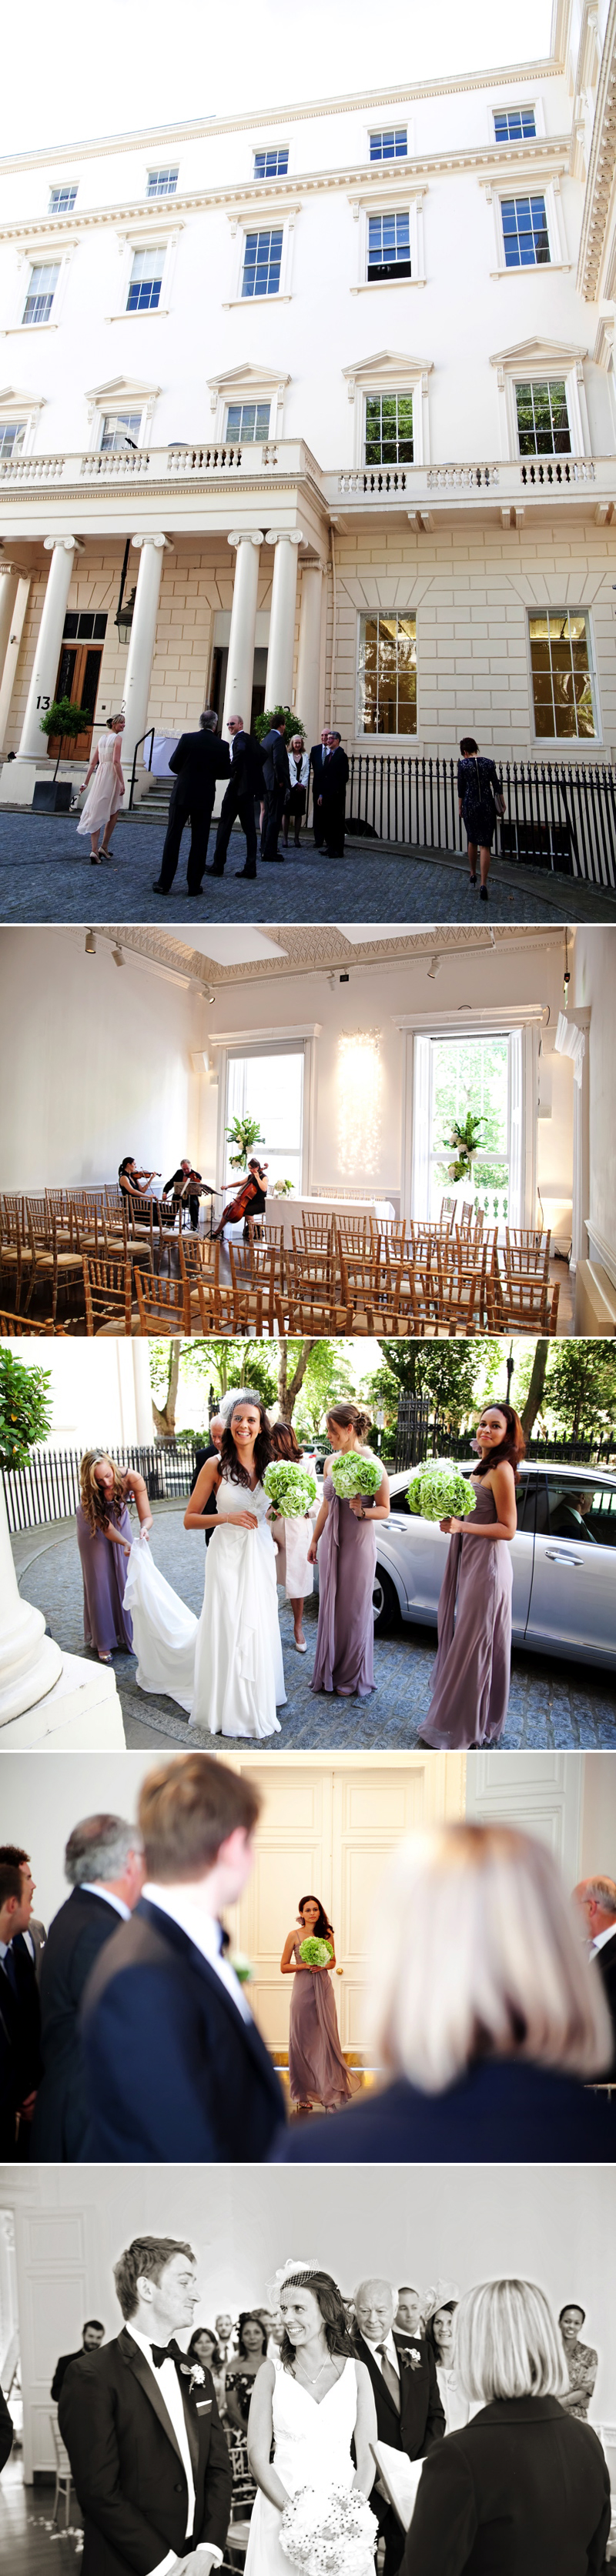 wedding-venues-in-london-institute-of-contemporary-arts-elegant-modern-wedding-002